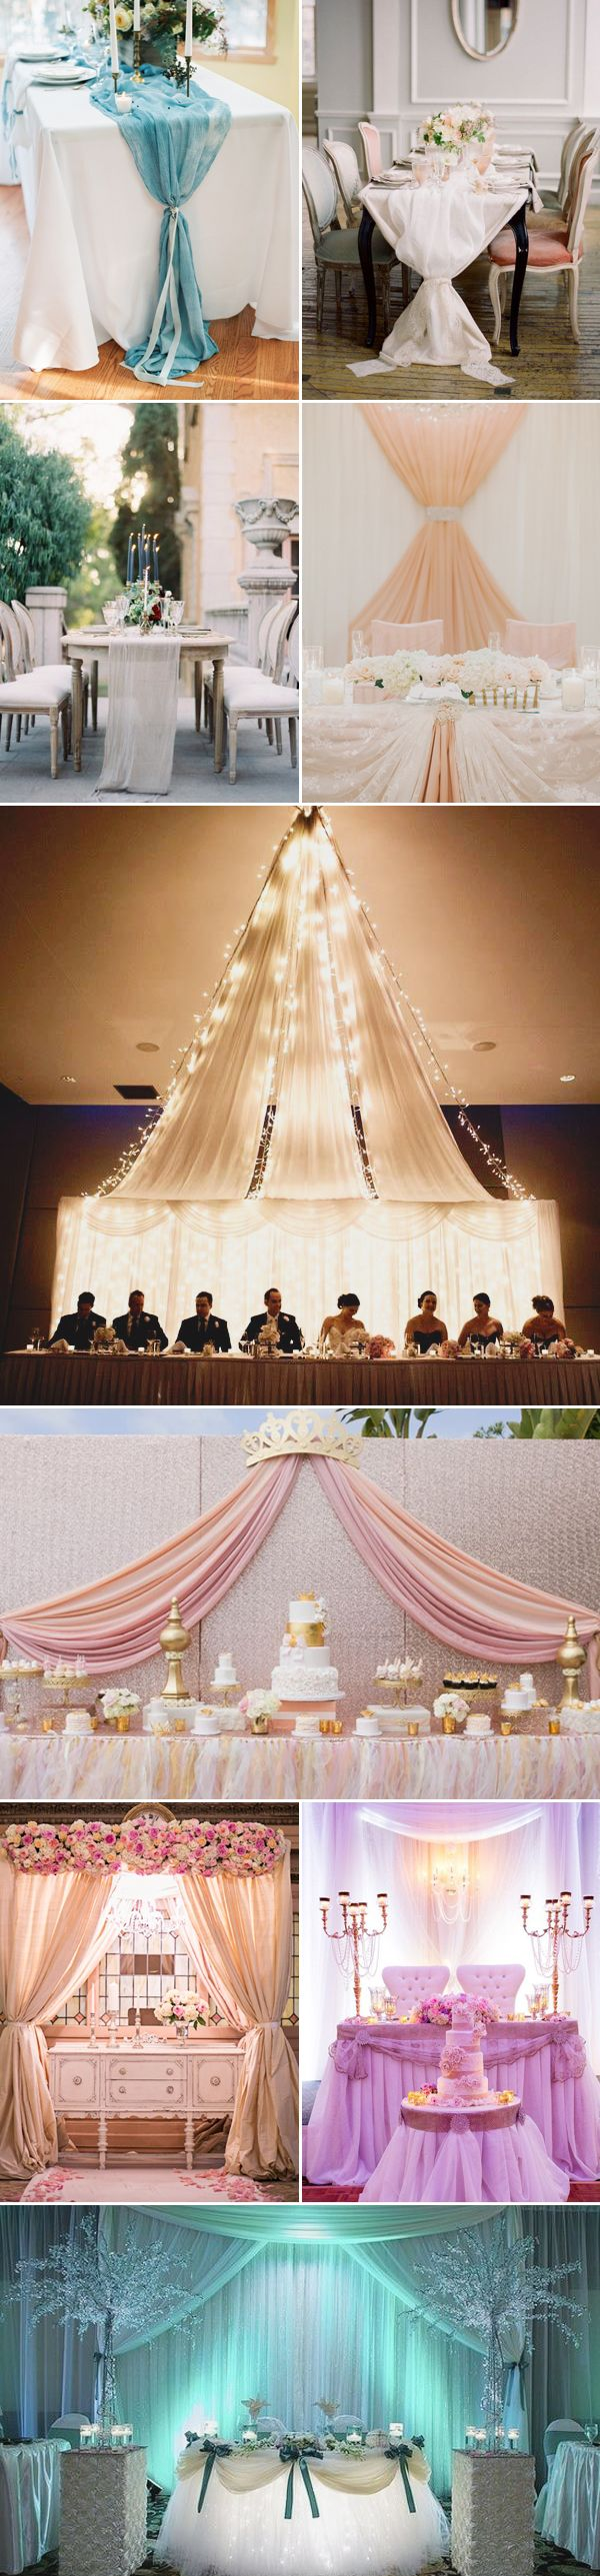 32 Romantic Drapery Decor Ideas to Stun Your Guests - Table Draping!